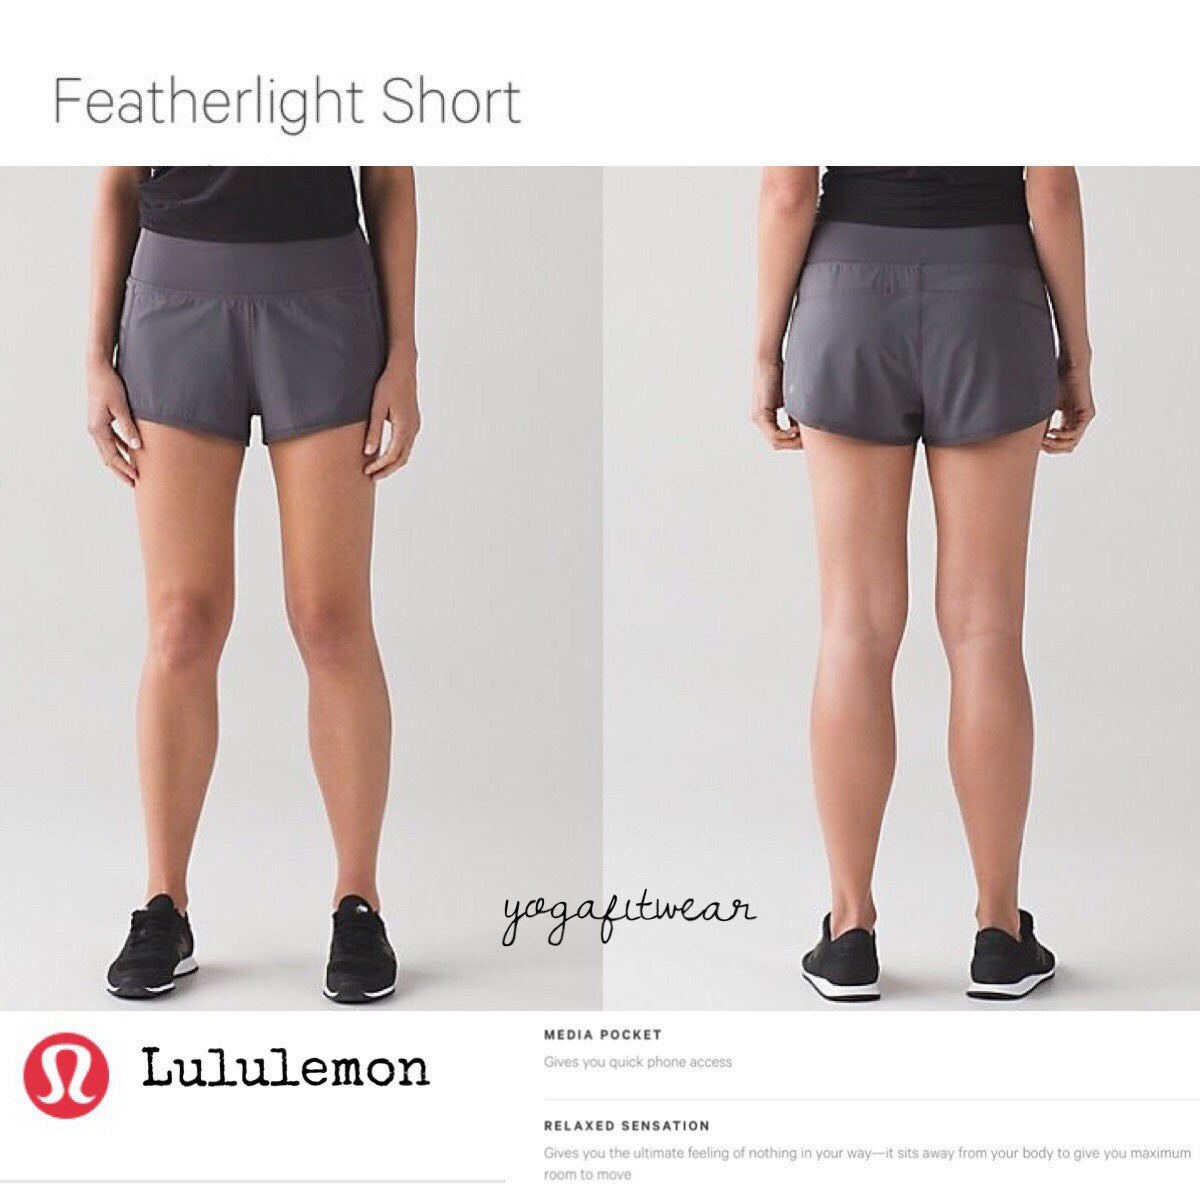 Lululemon - Featherlight Short (Dark Carbon) (LL01434)